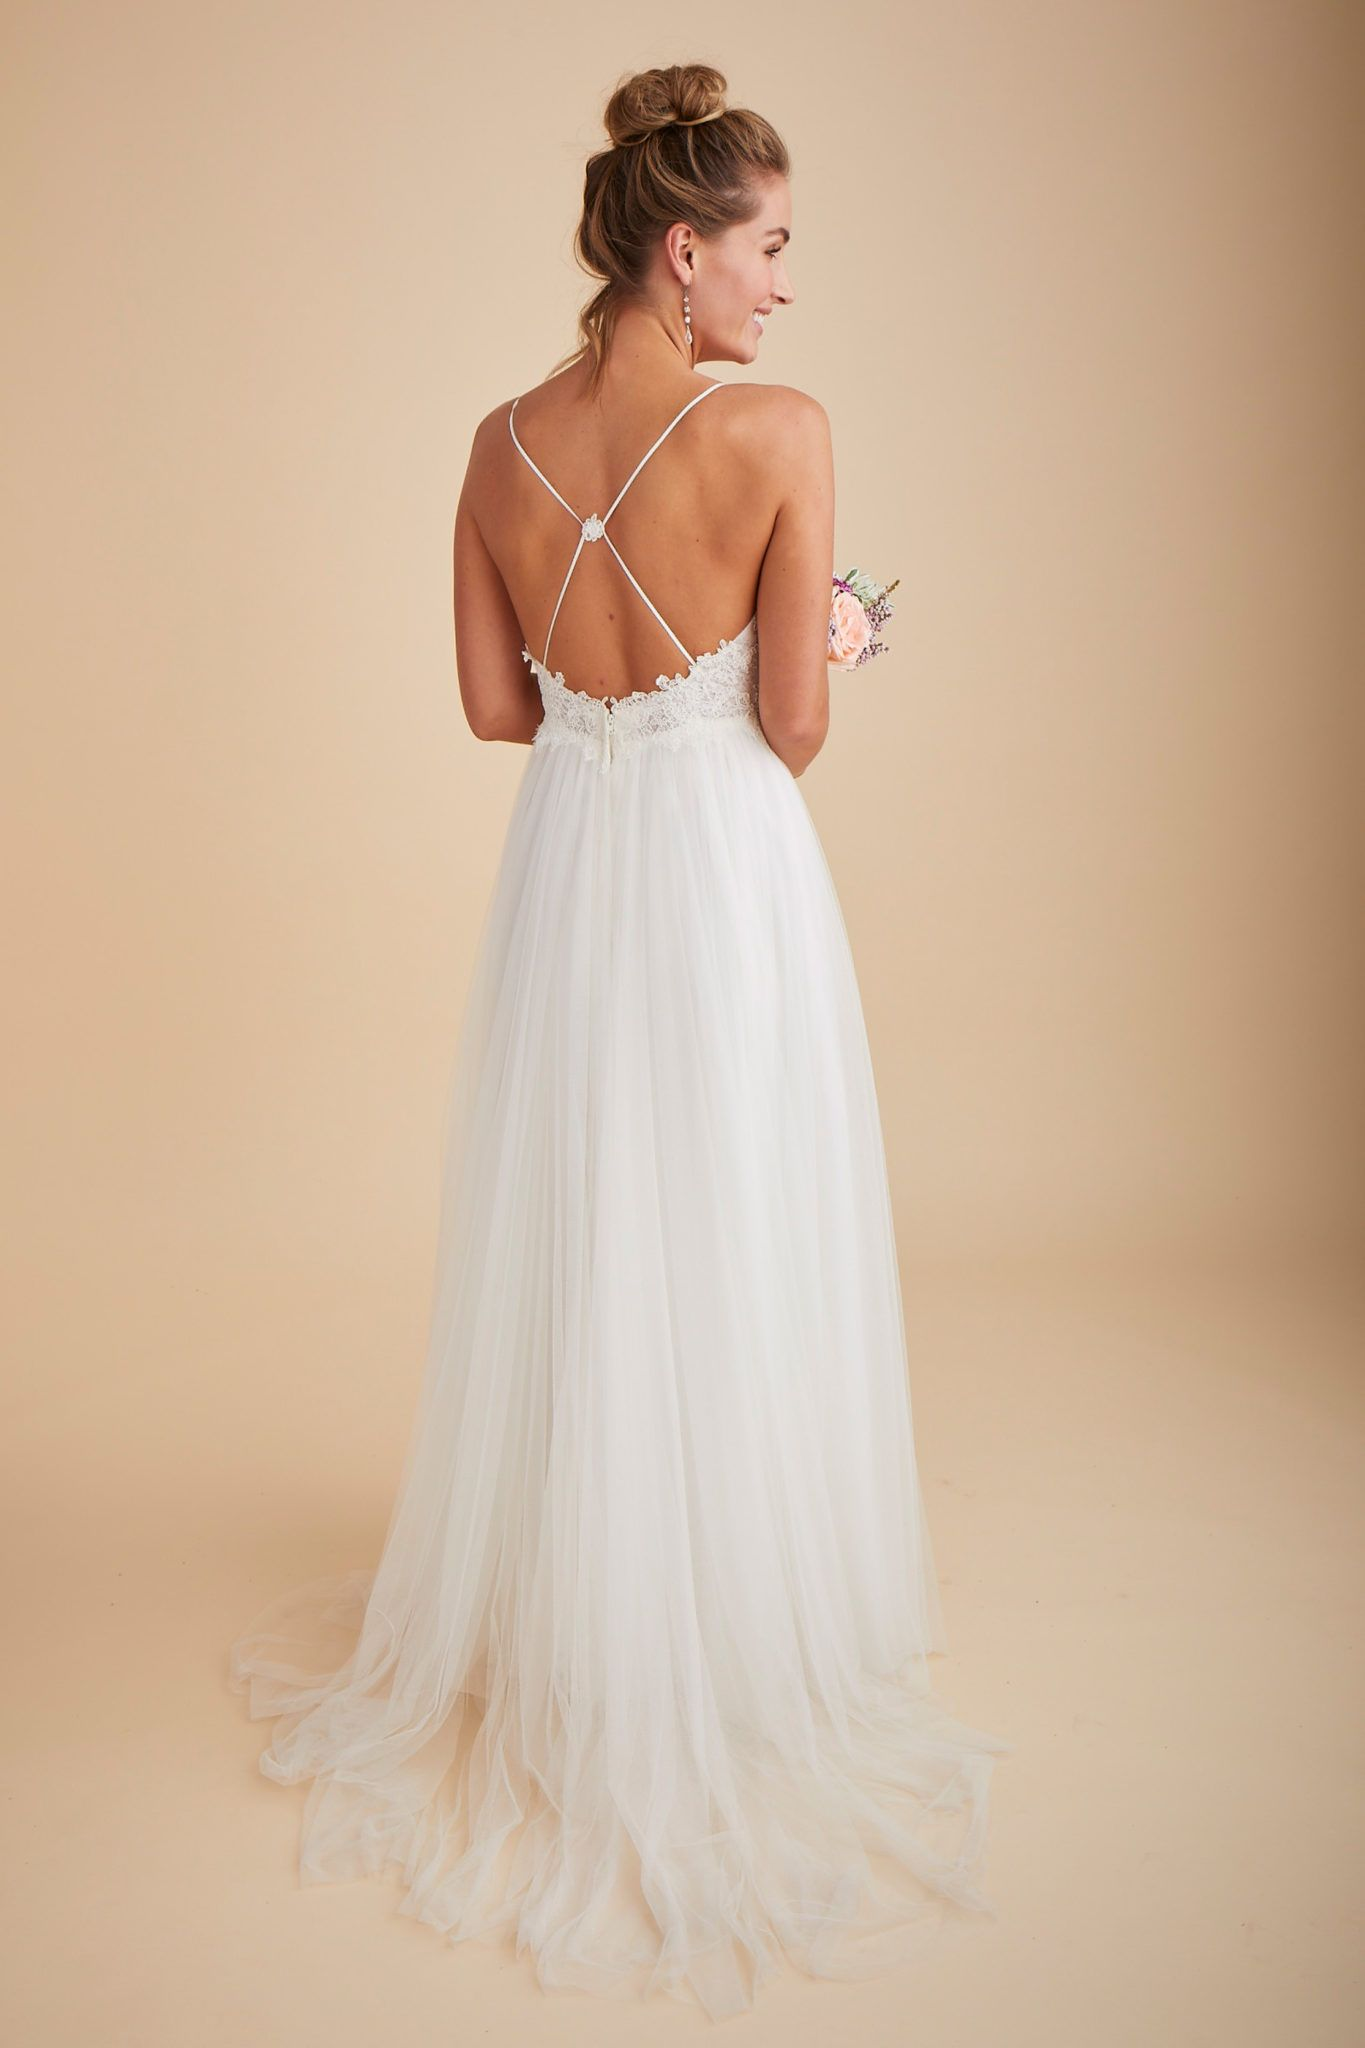 Flirt Gown From The New Astrid Mercedes Serendipity Collection Spring 2019 Bridal Gowns